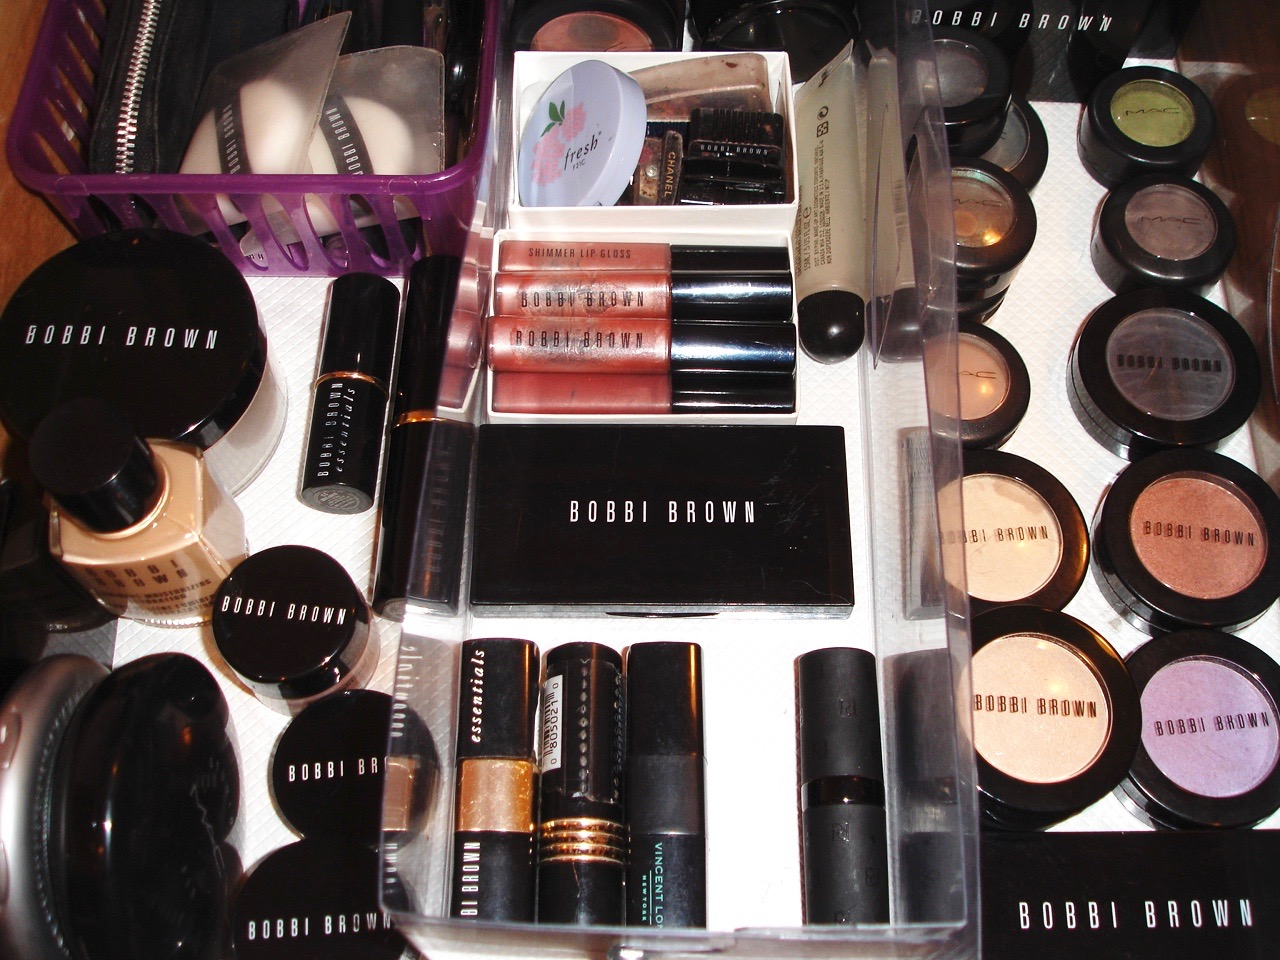 Get Rid of 100 Things ~ Get rid of unused make-up and keep only what you use.